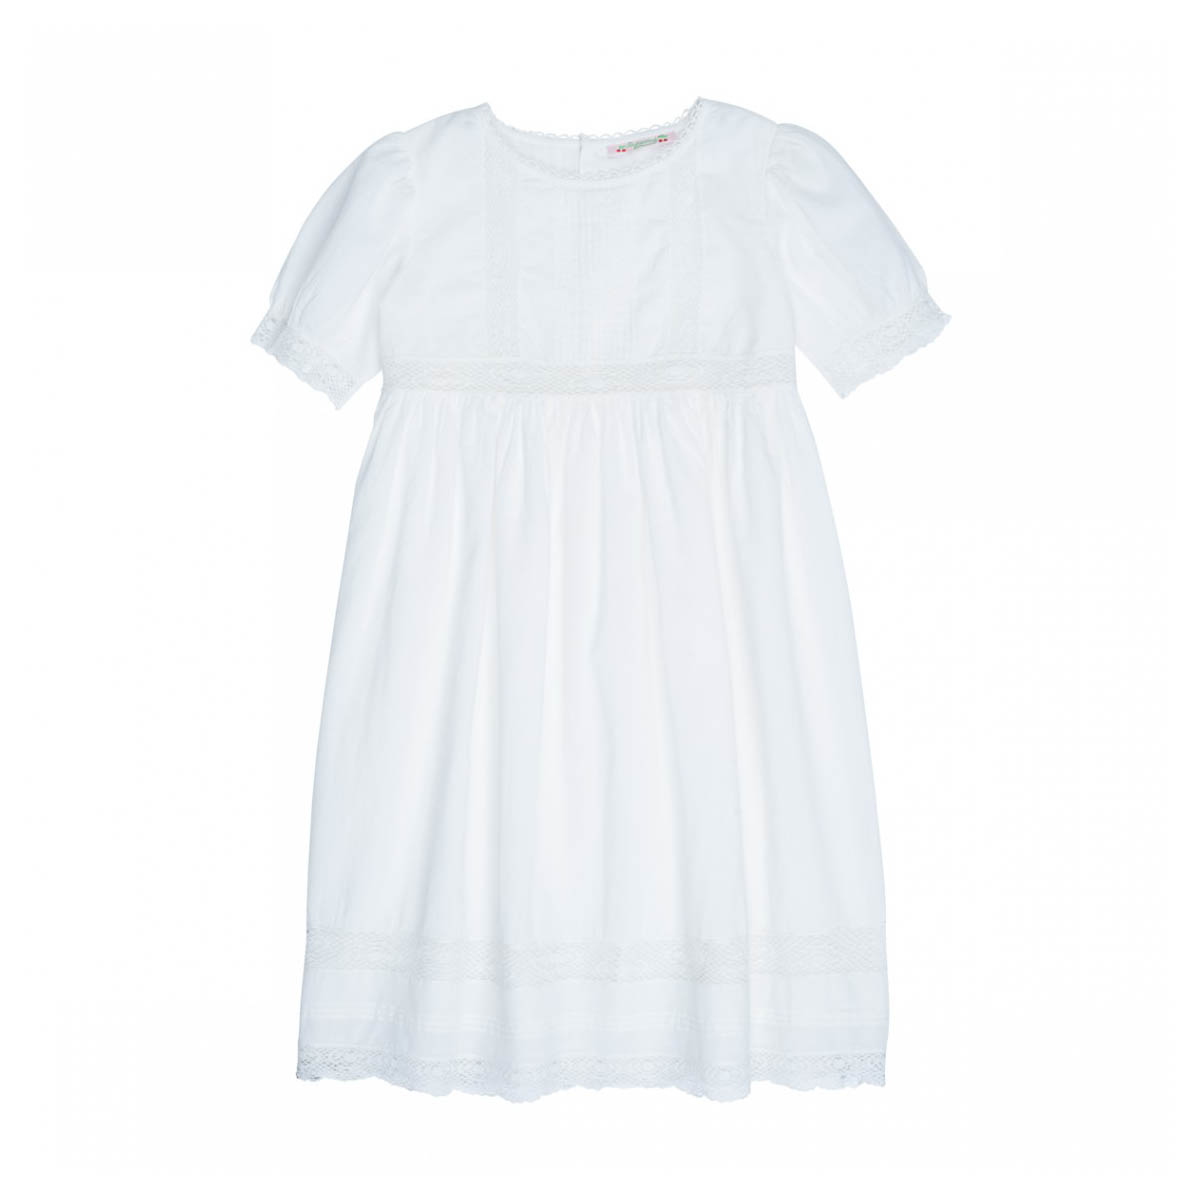 "Short Sleeve Flower Girl Dress, Bonpoint ""Gemma"" Dress"